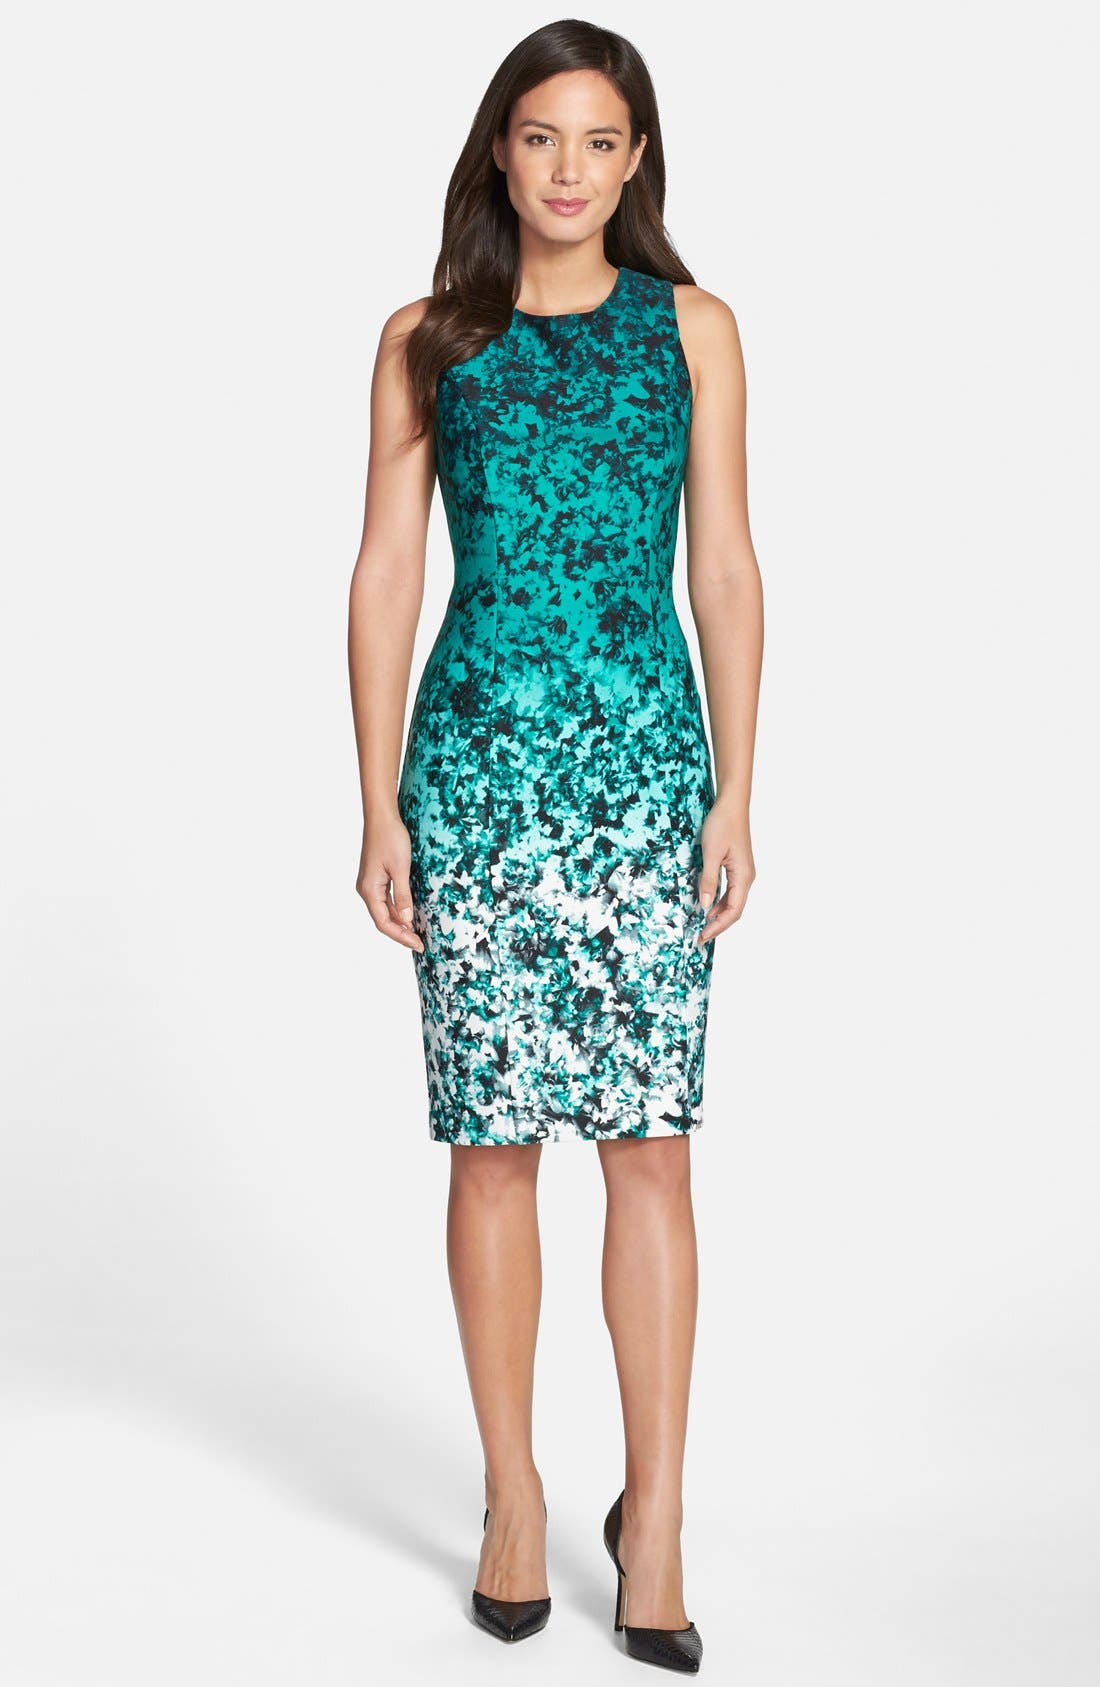 Ombré Floral Print Sleeveless Sheath Dress,                             Alternate thumbnail 6, color,                             310